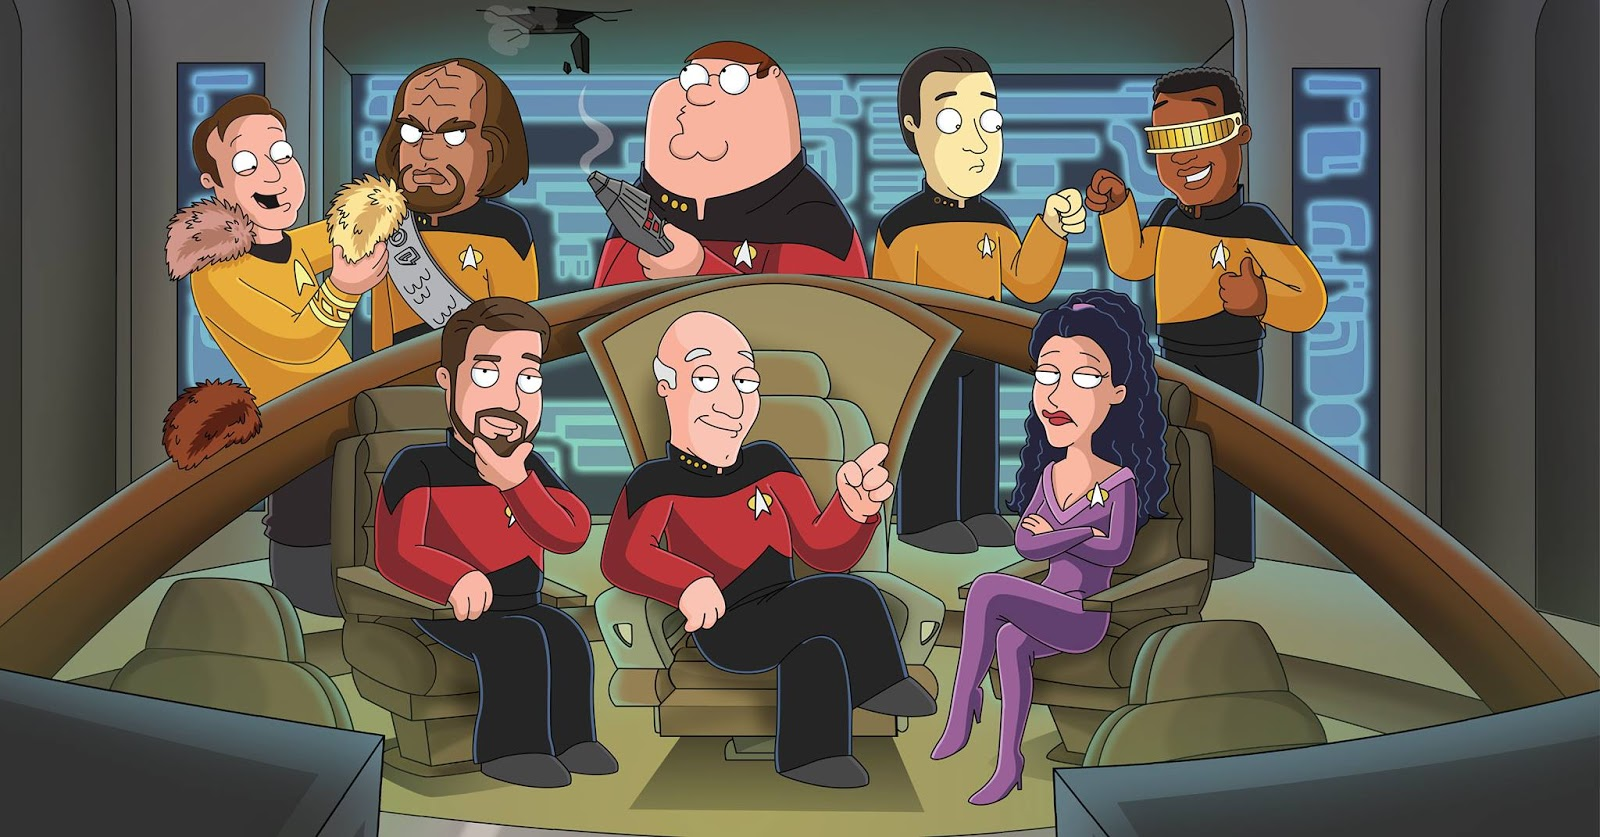 Big Bang Theory Bettwäsche The Trek Collective Family Guy Quests For Stuff On The